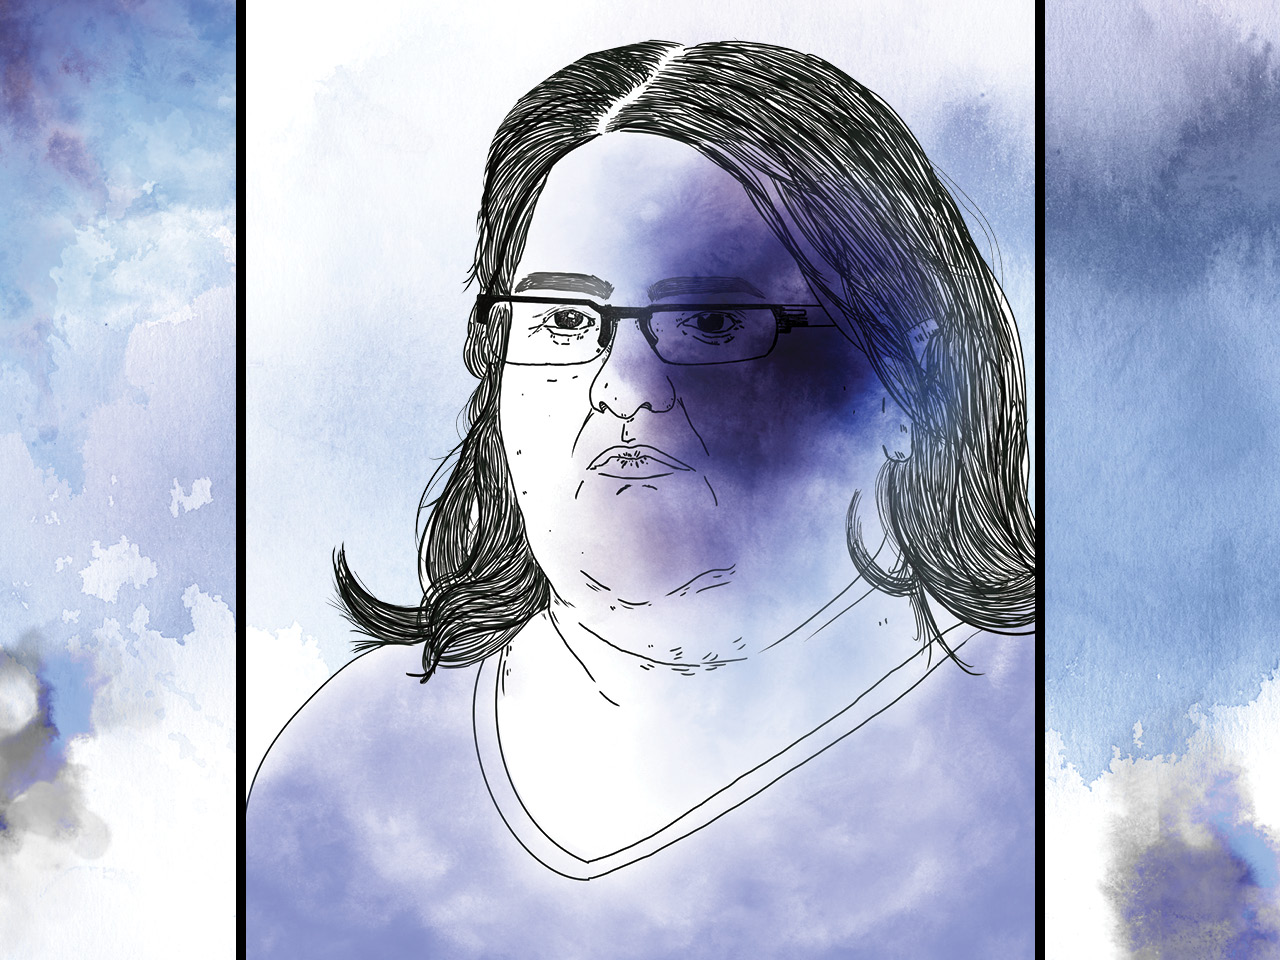 An inky illustration of Elizabeth Wettlaufer